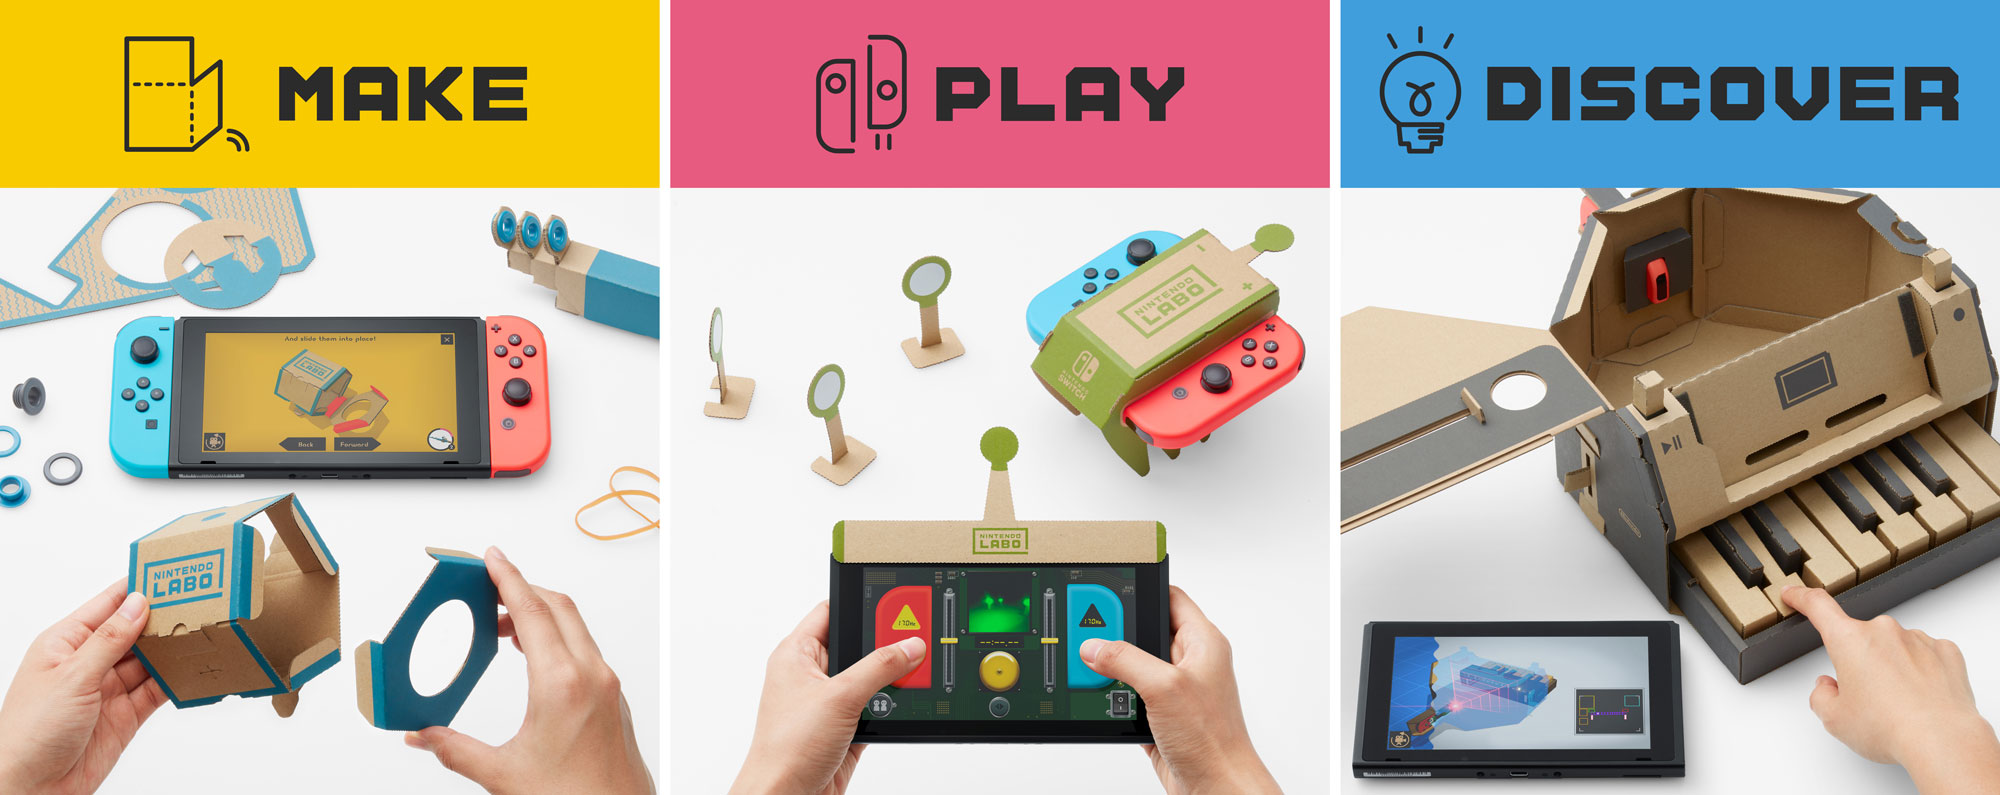 Nintendo Labo on the Switch is Nintendo at its most bizarrely magical